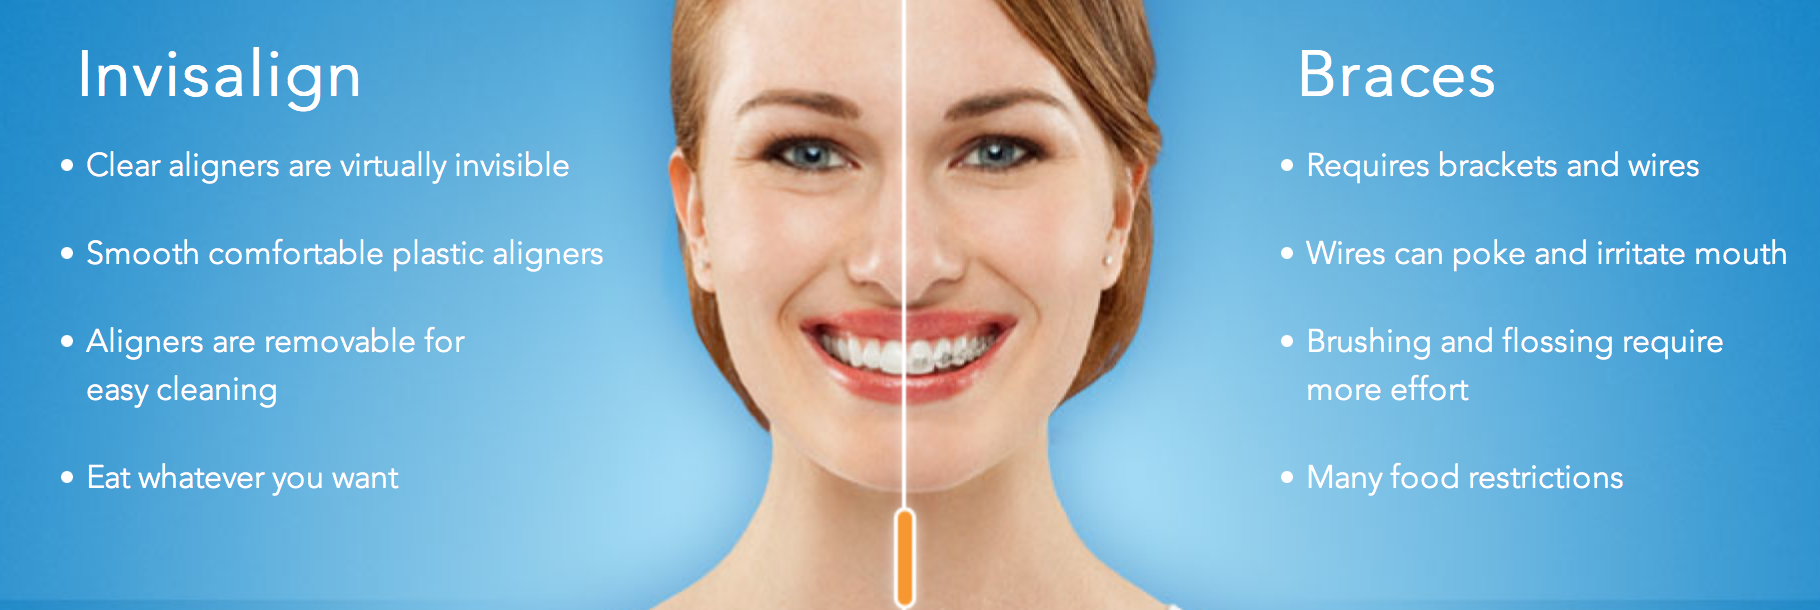 invisalign-your-secret-to-straight-teeth